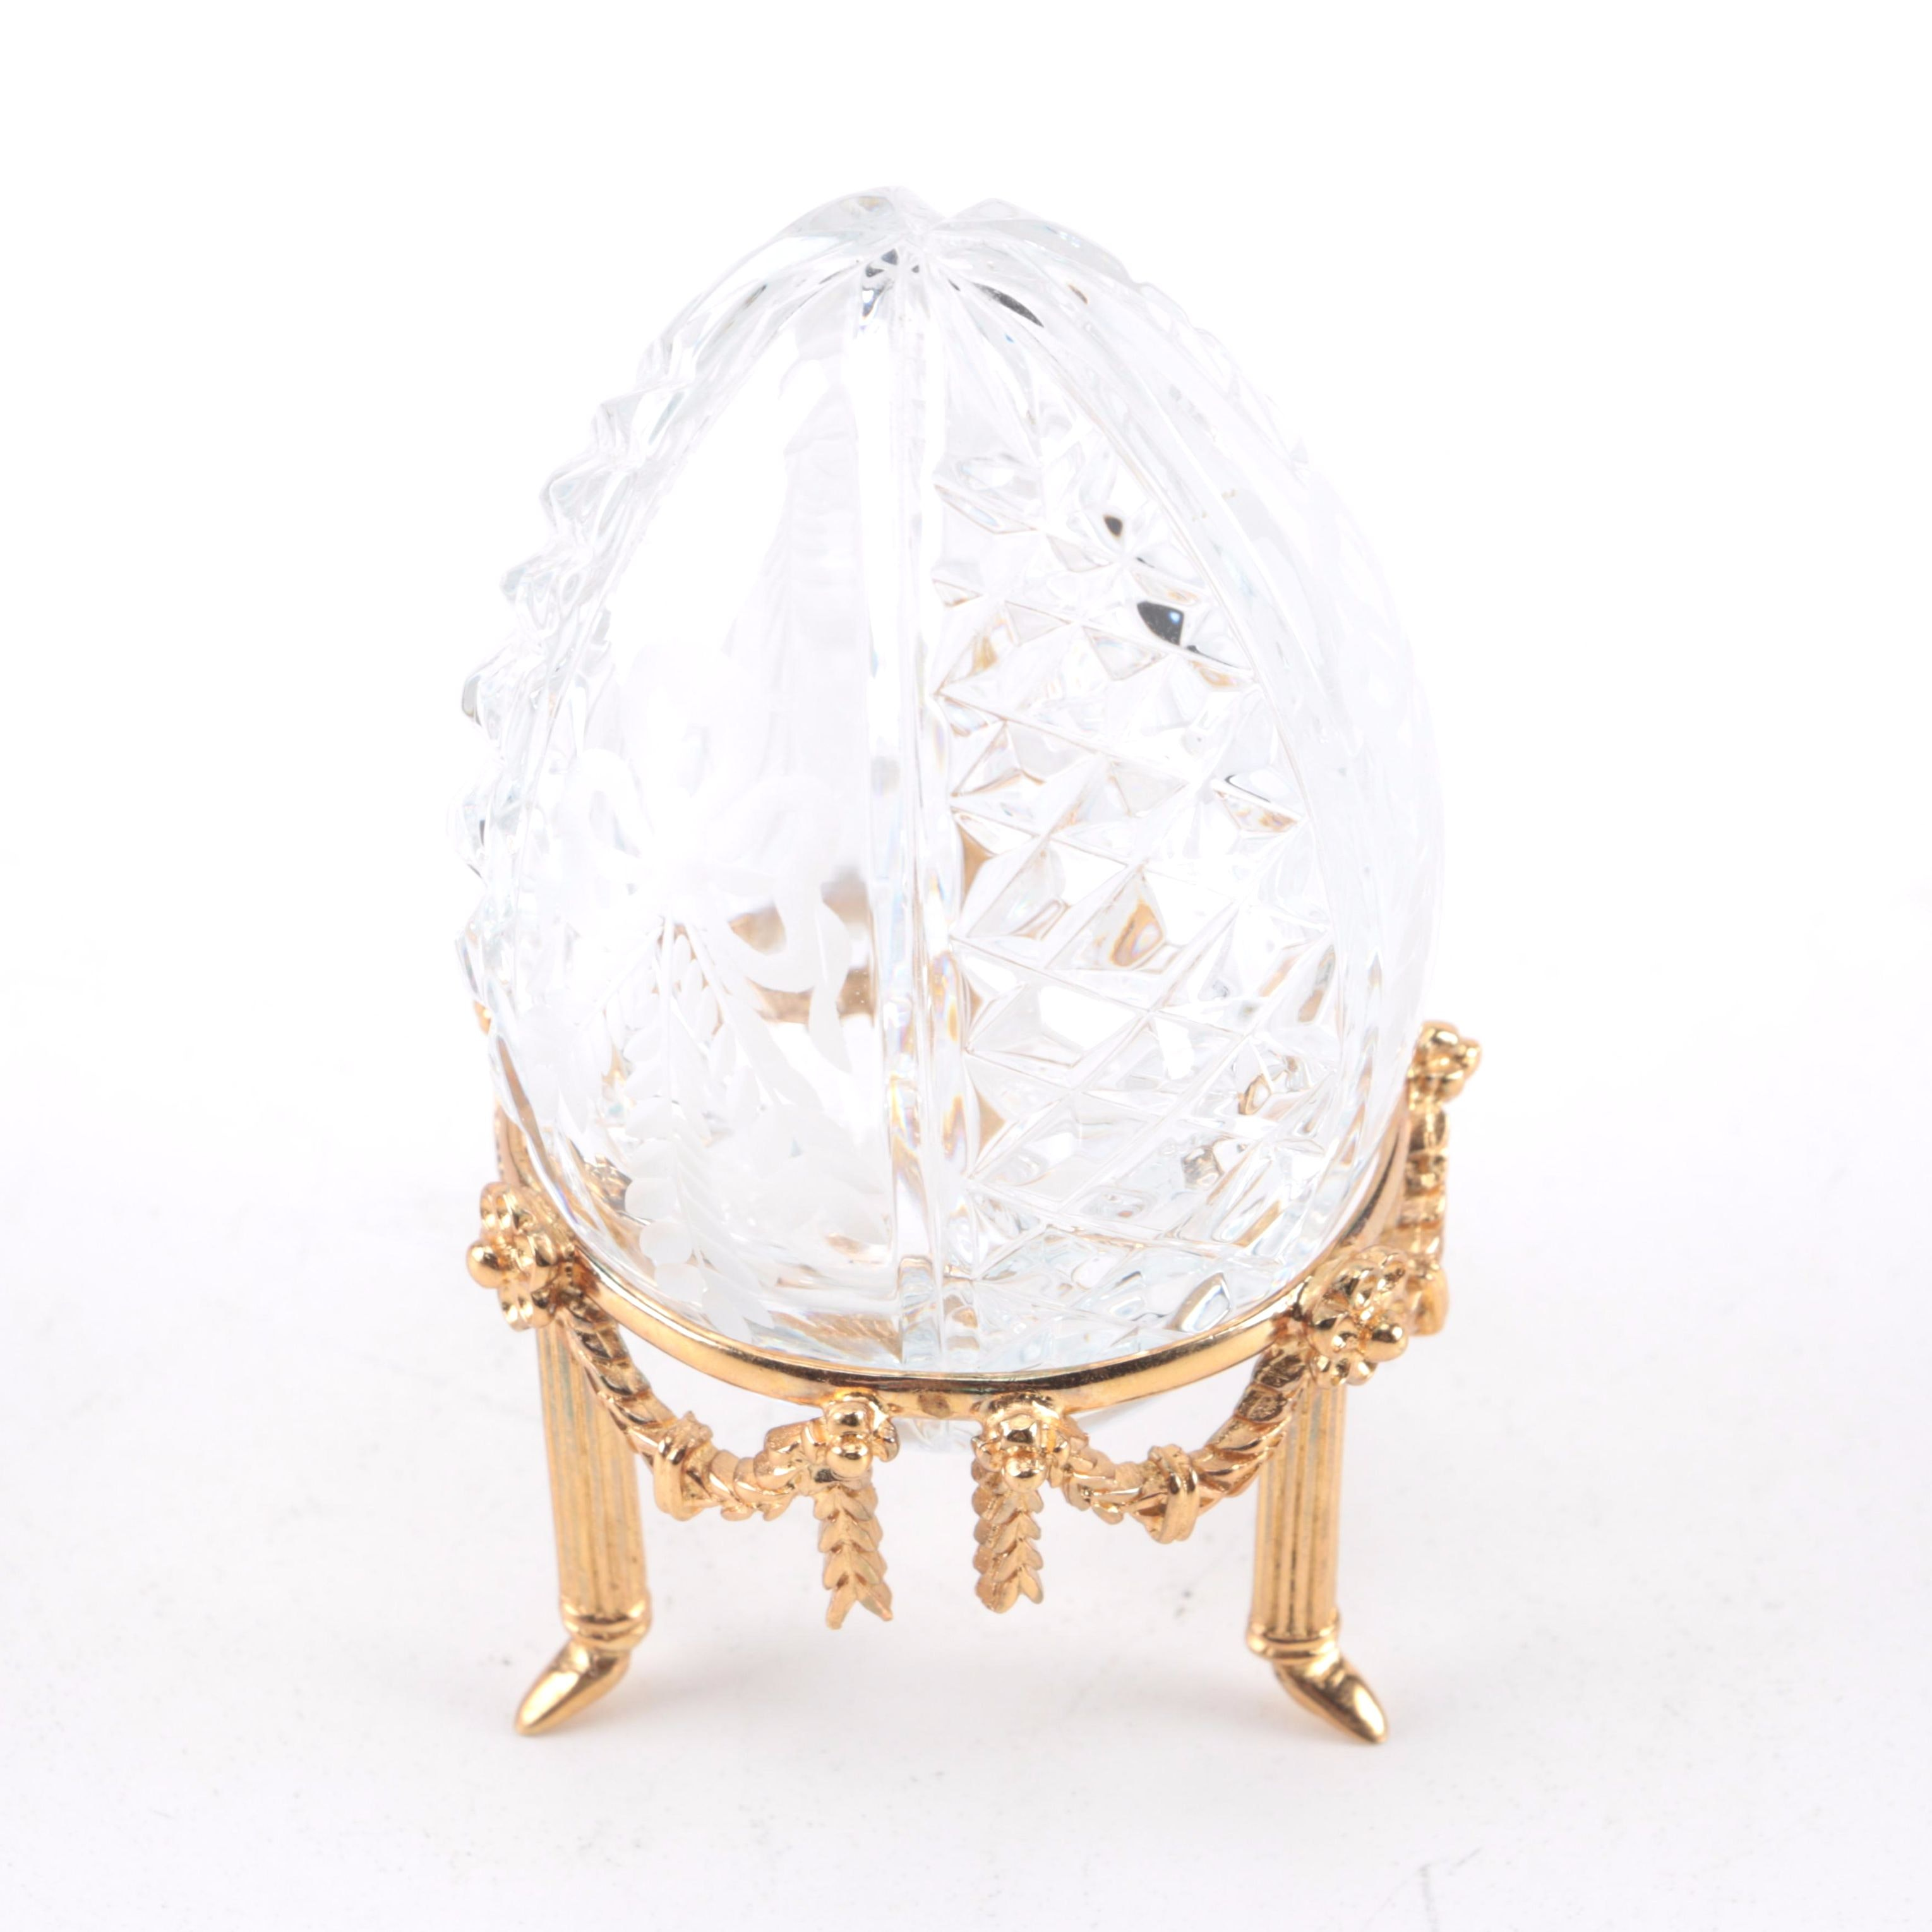 Fabergé Crystal Egg with Stand